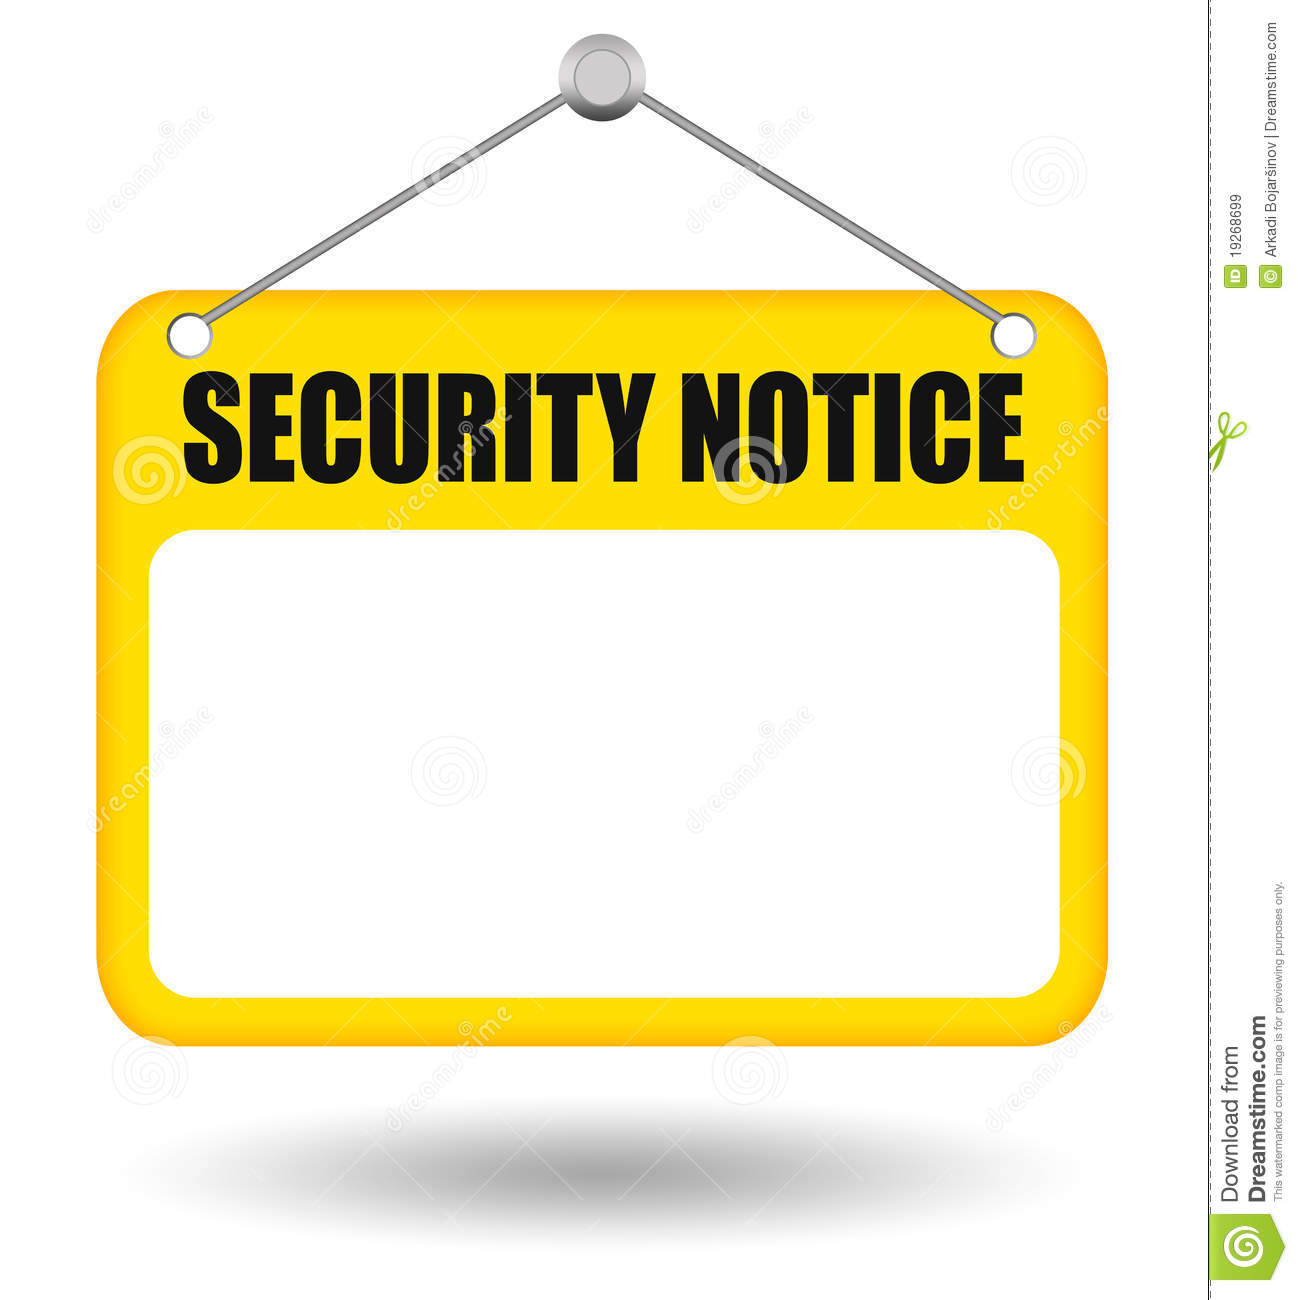 Security Notice Board Royalty Free Stock Images - Image: 19268699